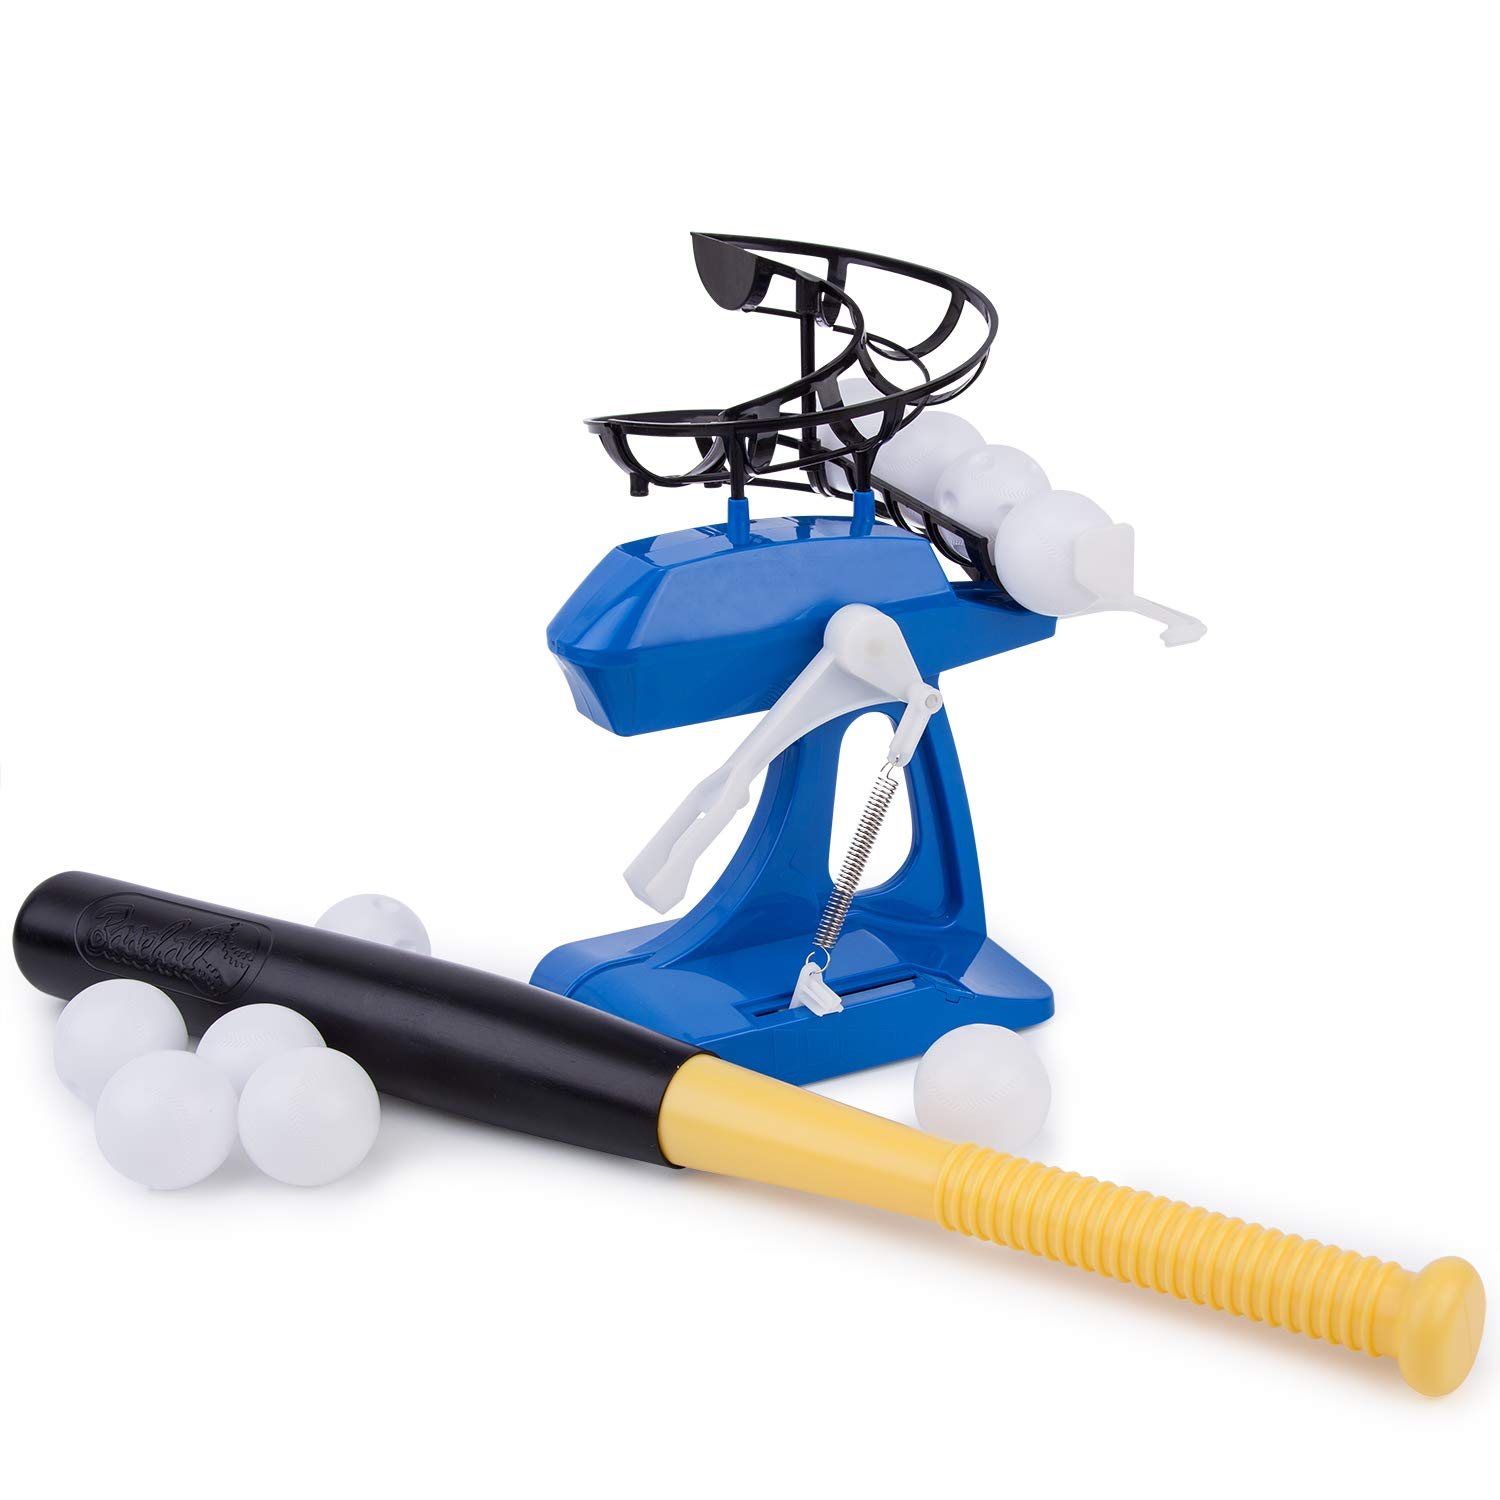 Liberry Outdoor Baseball Pitching Machine Toy, Baseball Training for Kids, Batting Practice Equipment, Toddler Baseball Traning, Early Educational, Exercising and Training. Including 10 Balls & a Bat by Liberry